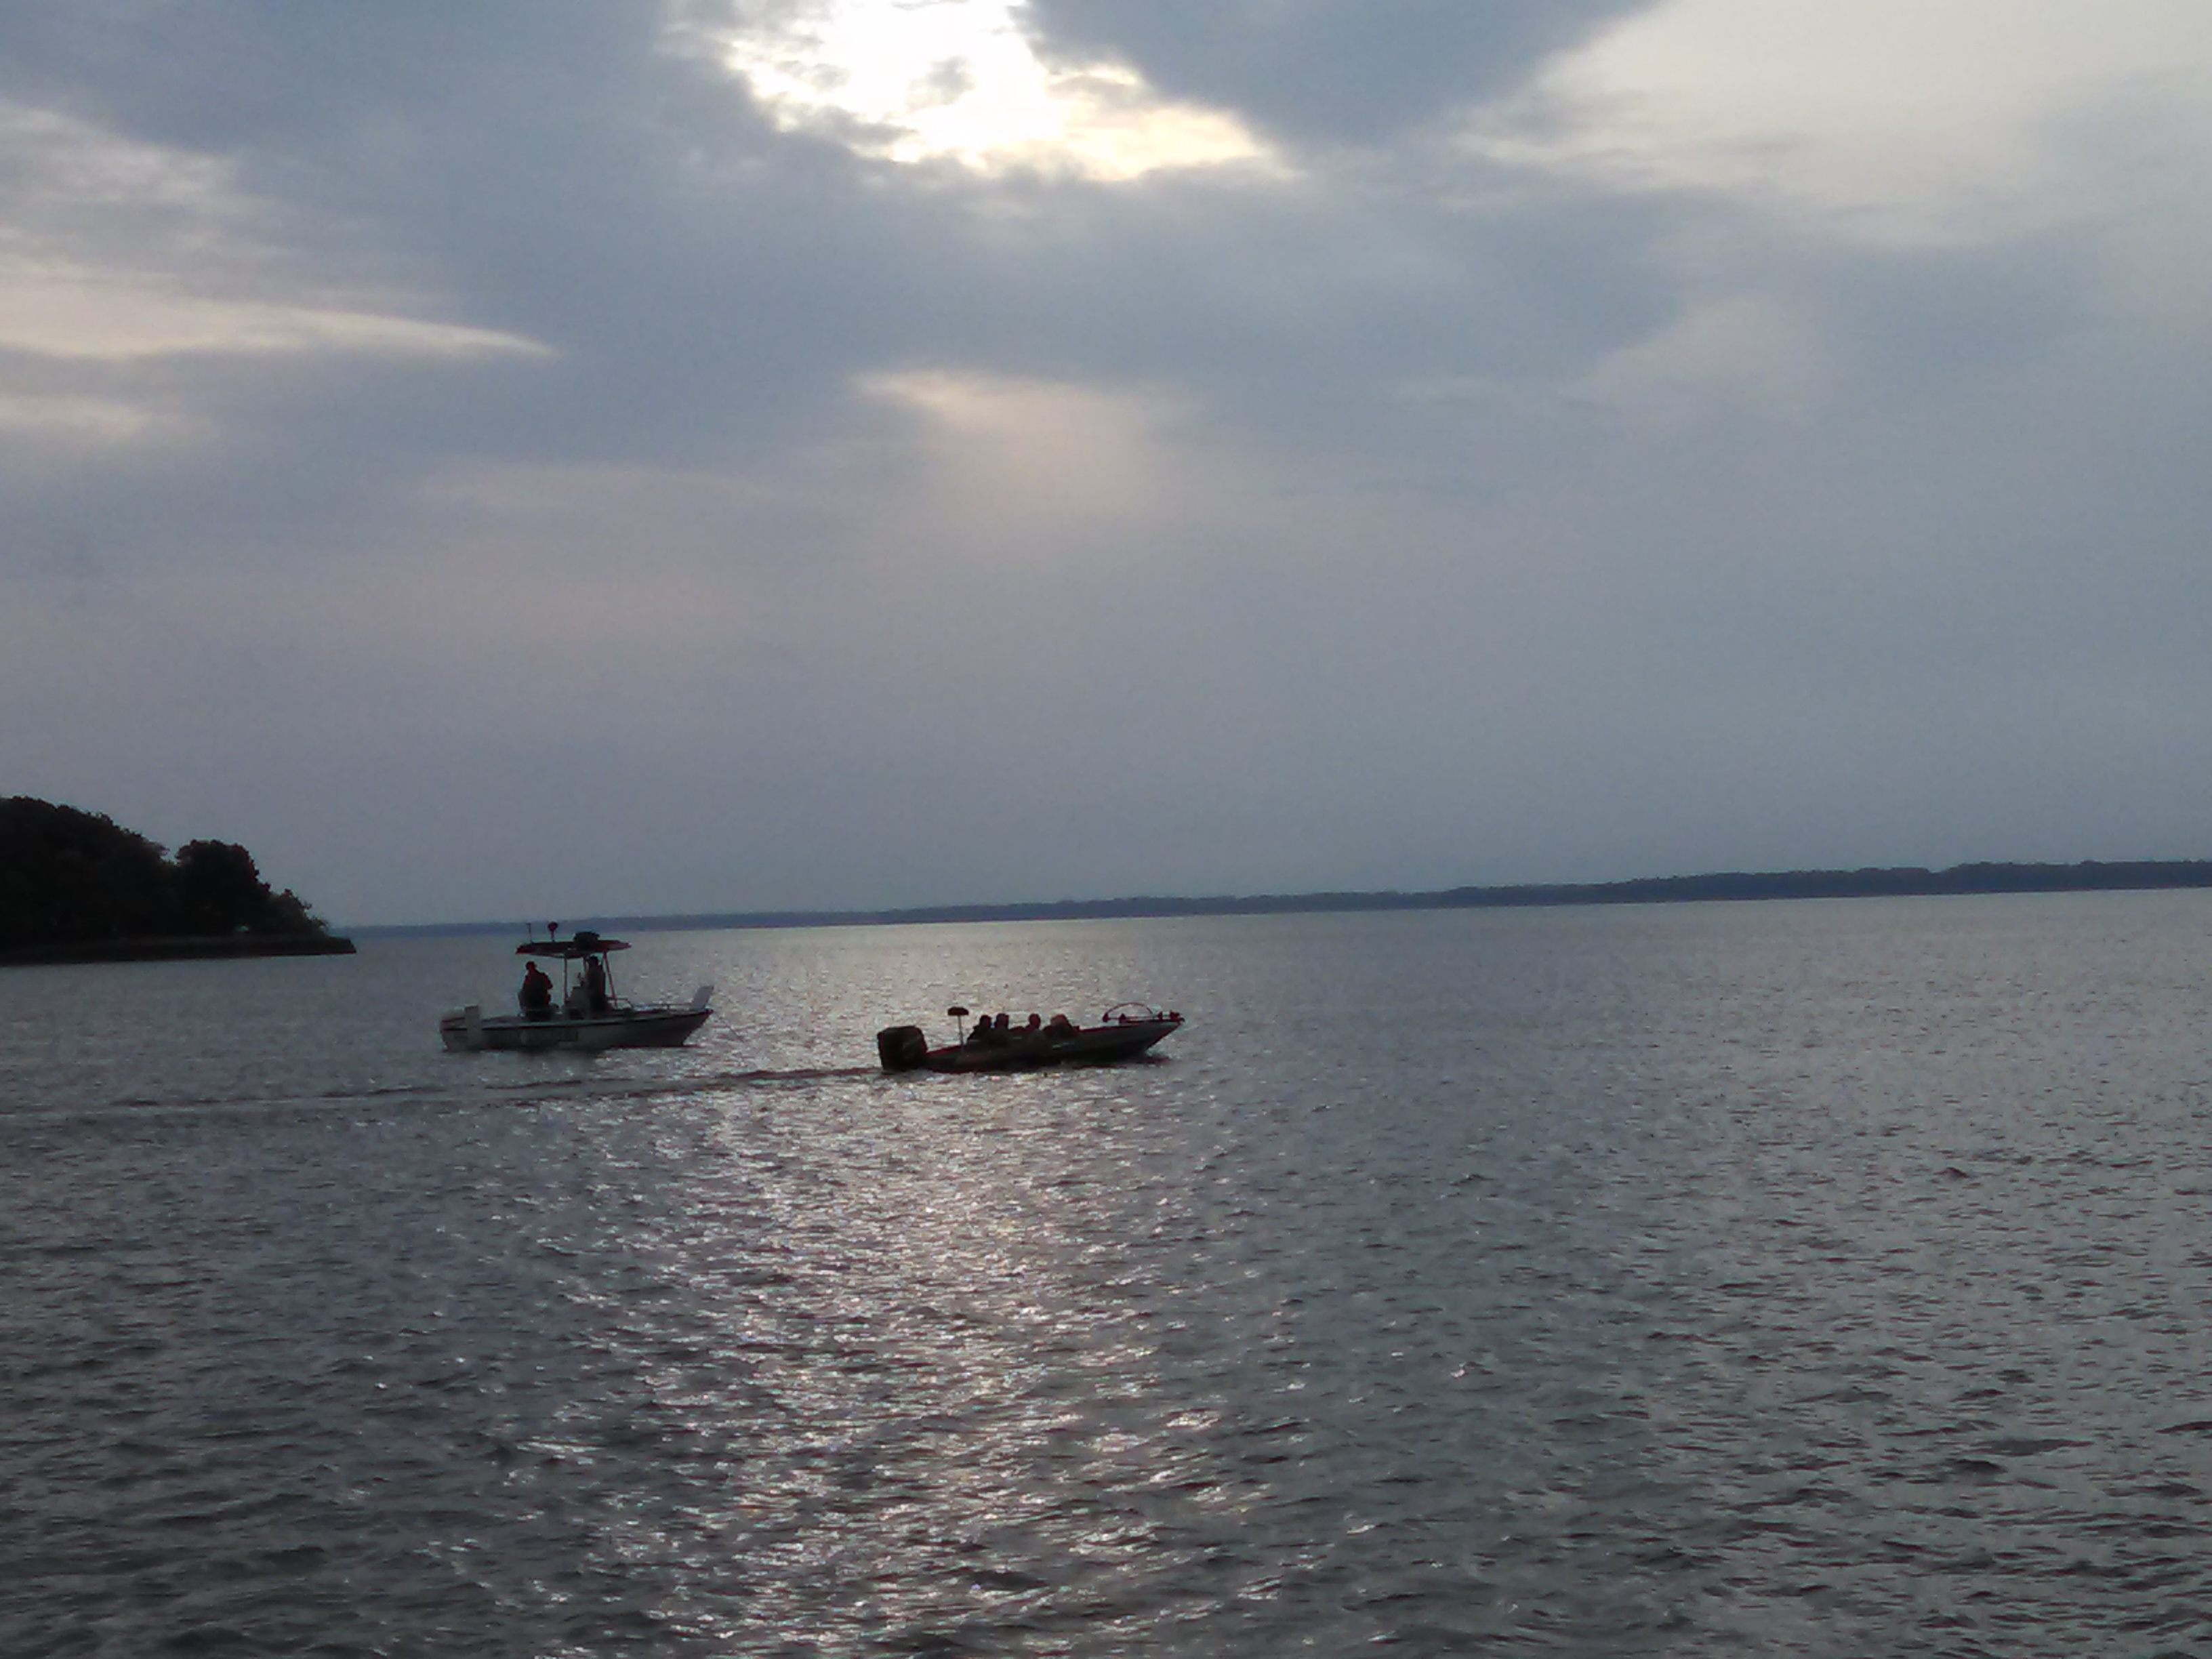 A file photo of boats preparing for the start of the state finals of the IHSA's bass fishing for high schools at Carlyle Lake. Credit: Dale Bowman